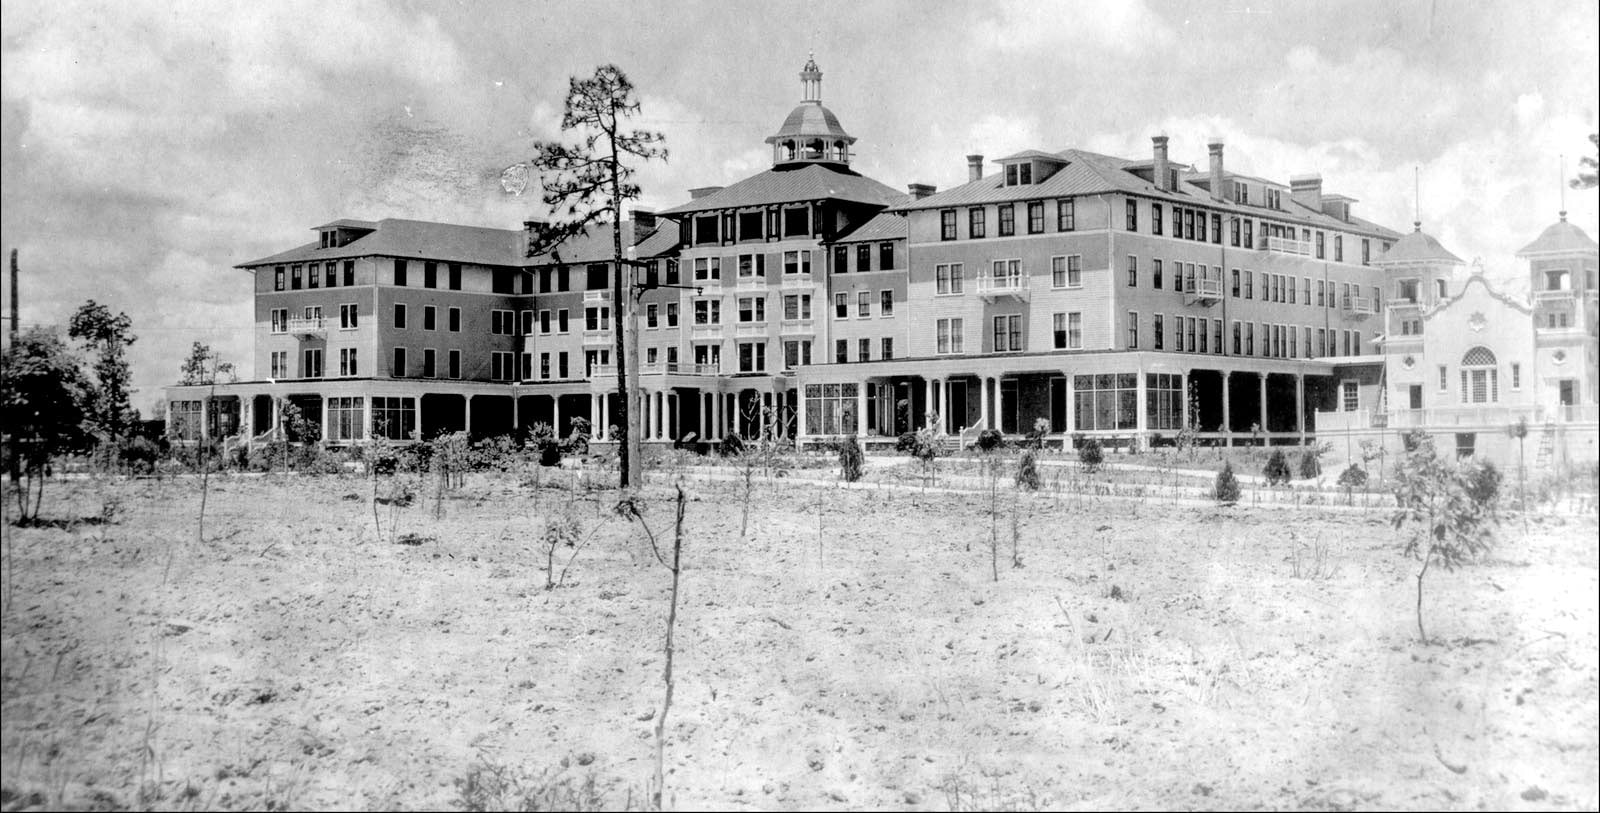 Historic Exterior Image of Pinehurst Resort, 1895, Member of Historic Hotels of America, in Village of Pinehurst, North Carolina, Discover